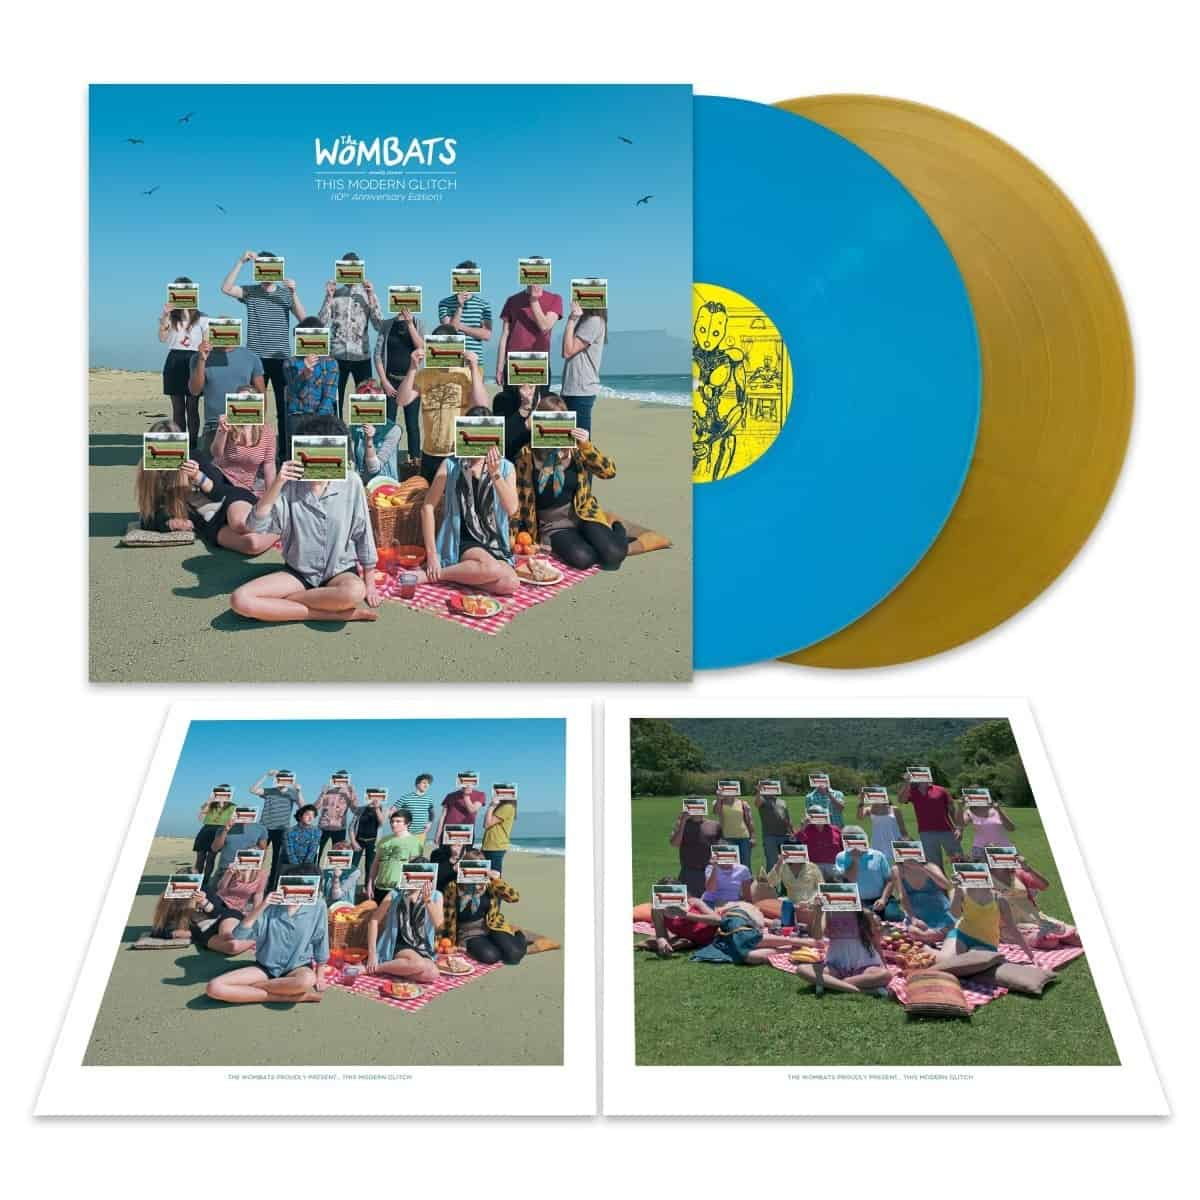 The Wombats - The Wombats Proudly Present... This Modern Glitch 10th Anniversary Edition Sky Blue + Gold Vinyl